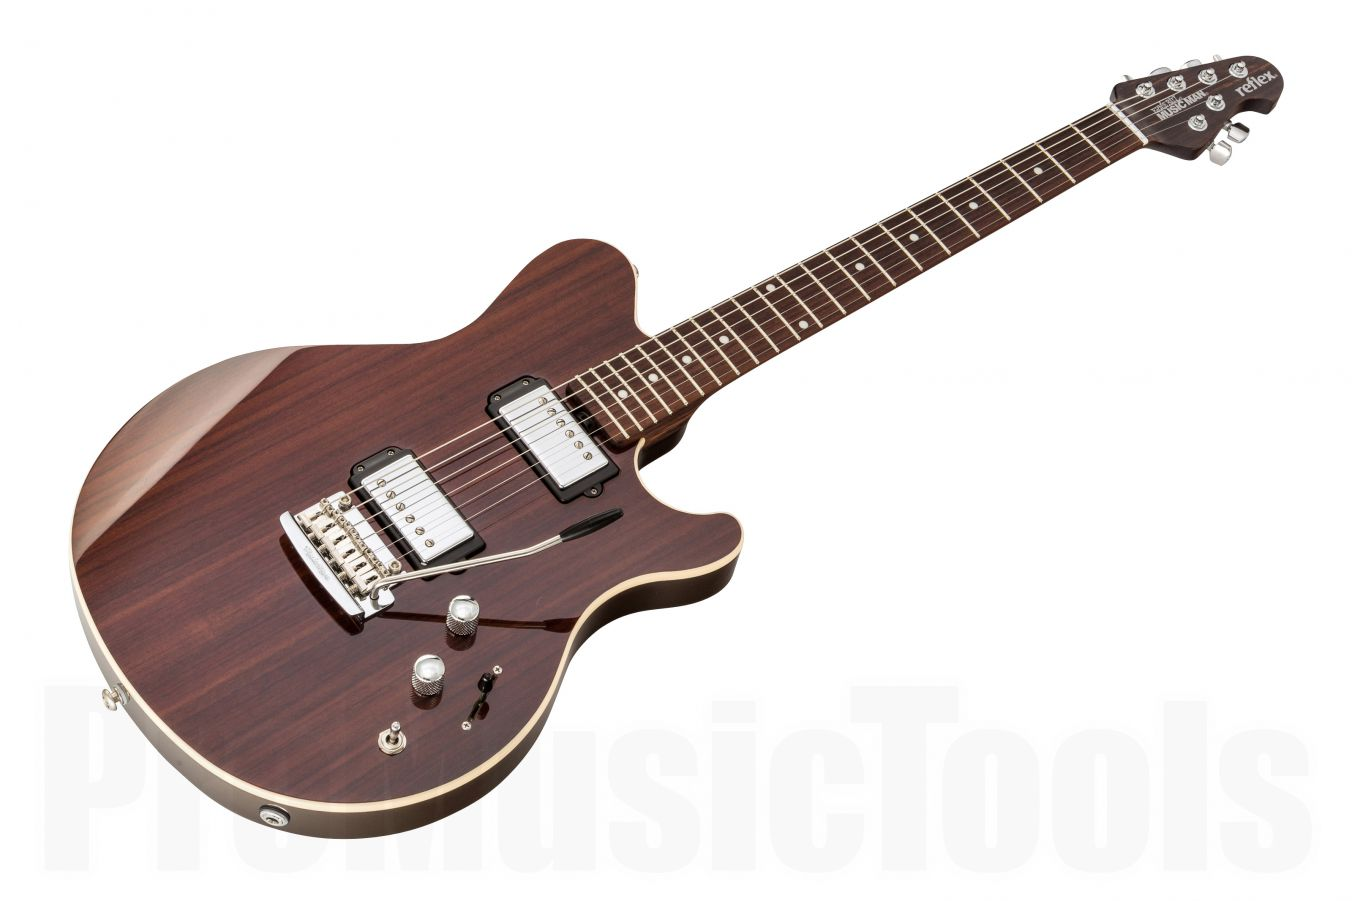 Music Man USA Reflex HH Trem Guitar RW - Rosewood Top - Rosewood Neck Limited Edition